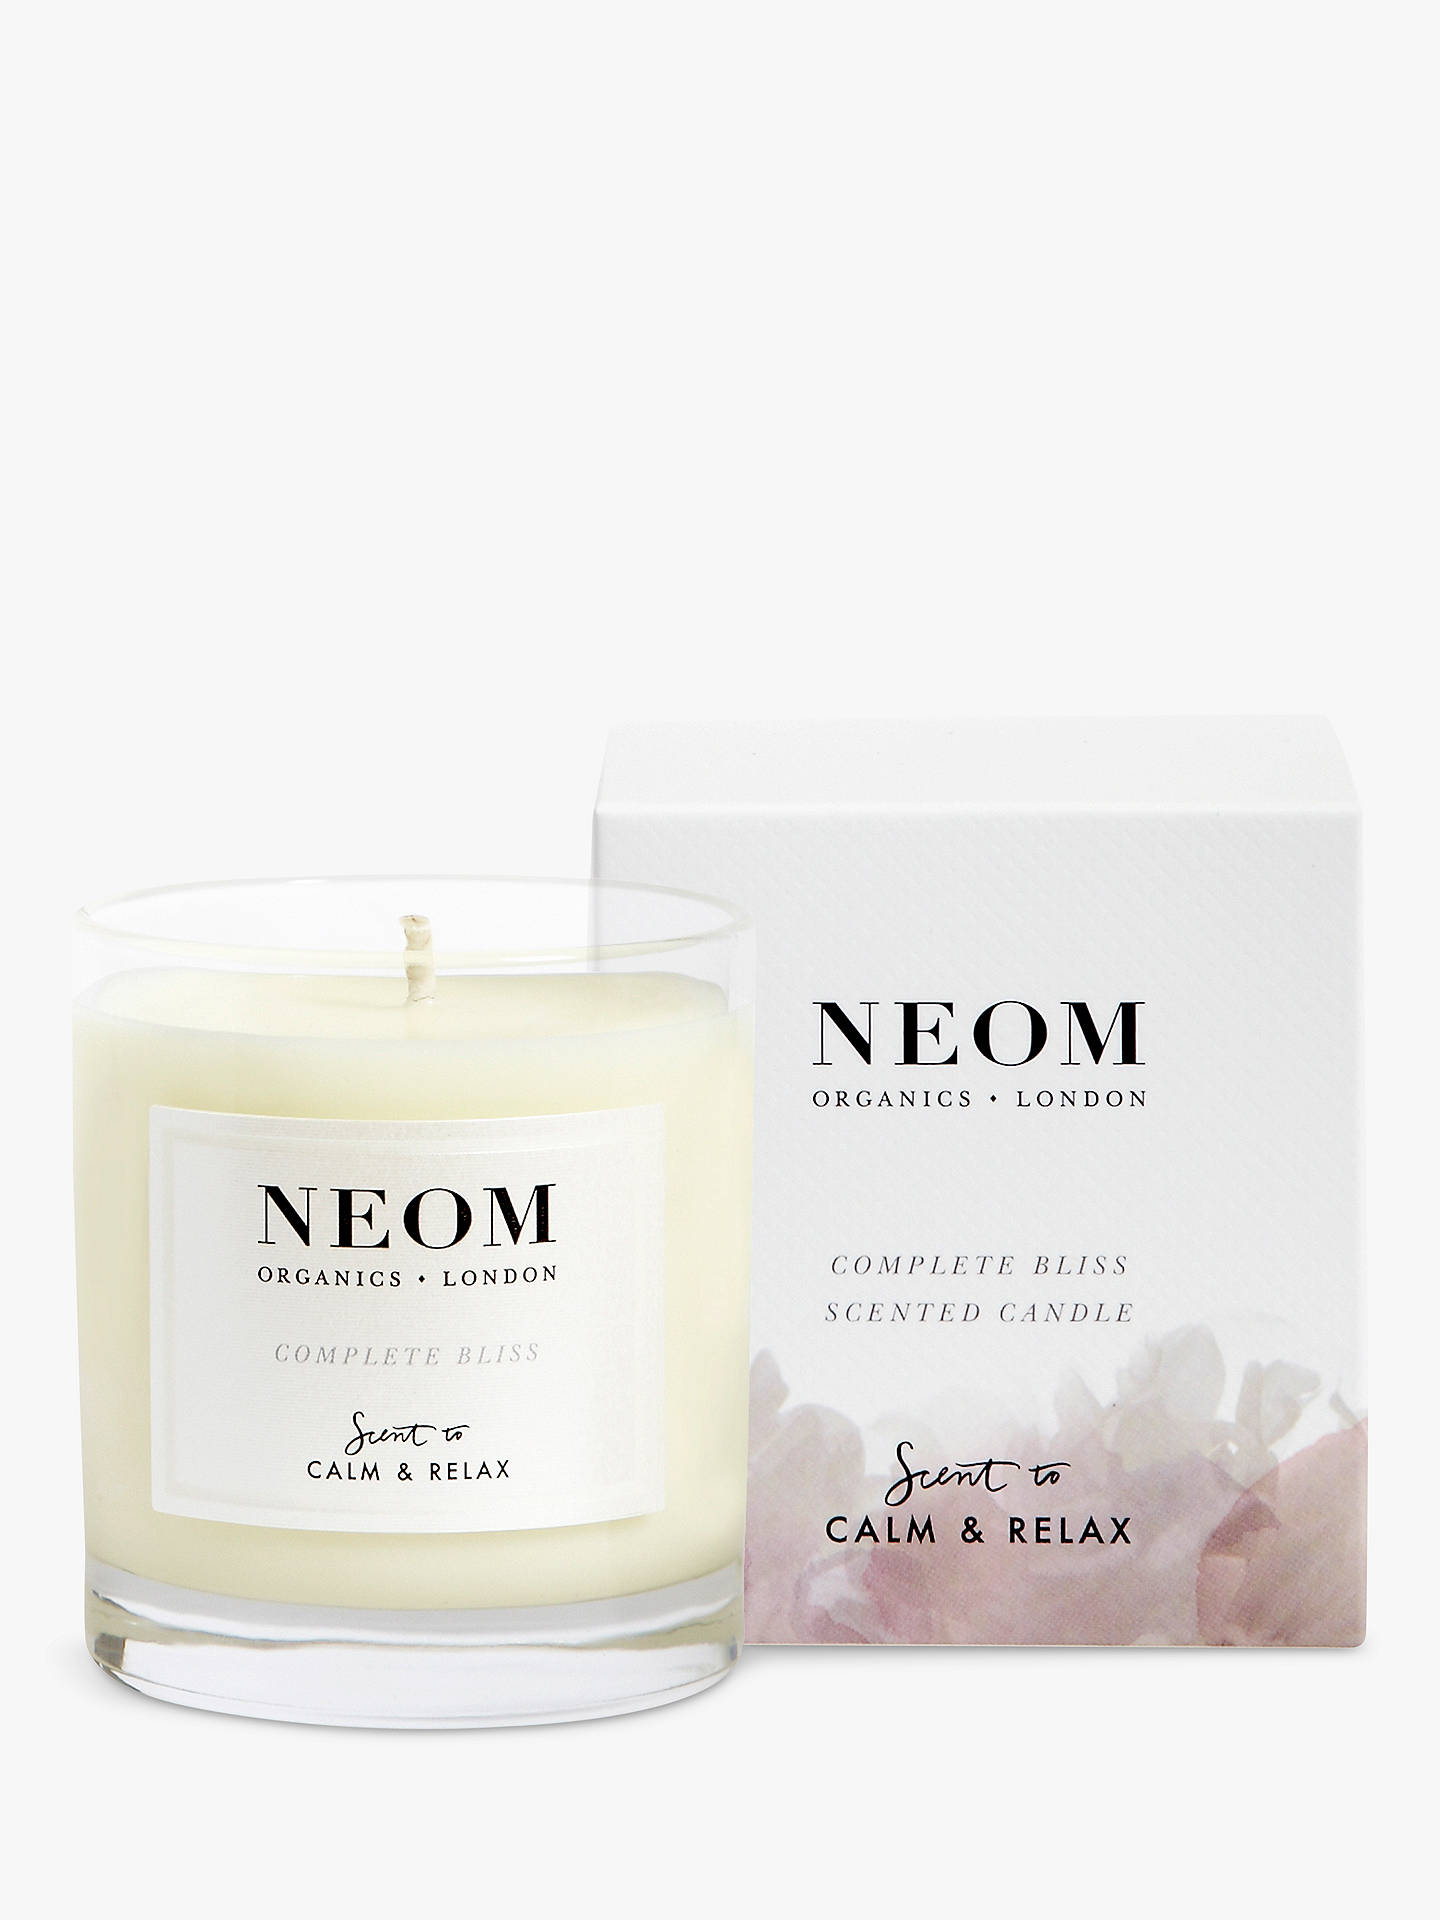 BuyNeom Organics London Complete Bliss Candle Online at johnlewis.com